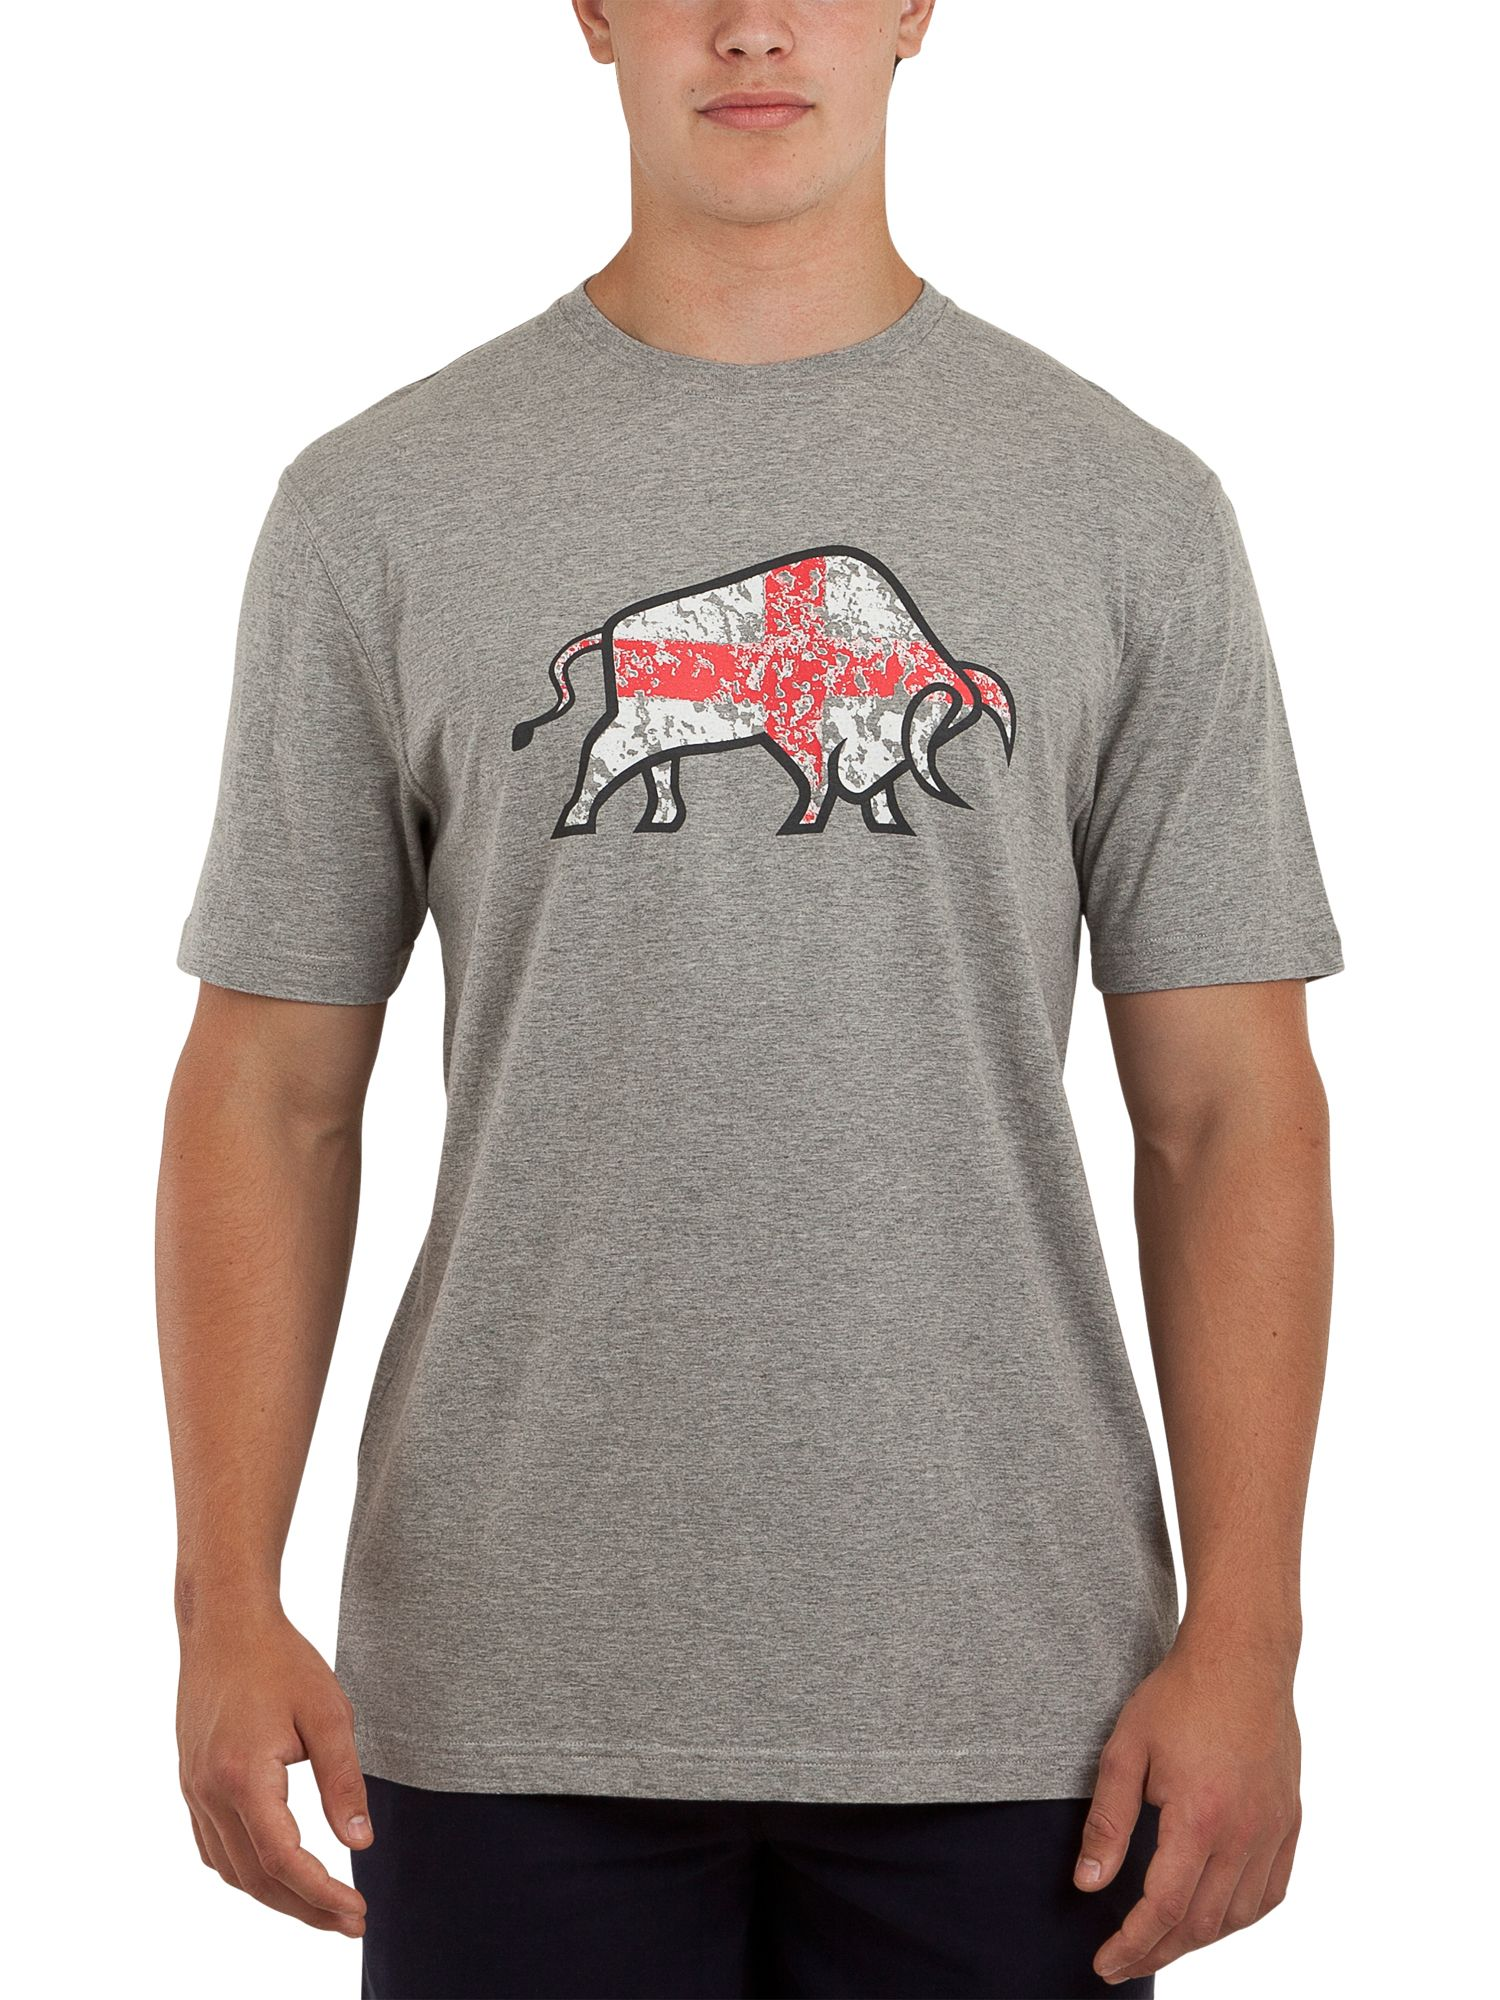 Raging Bull Mens Raging Bull St george flag T-shirt, product image